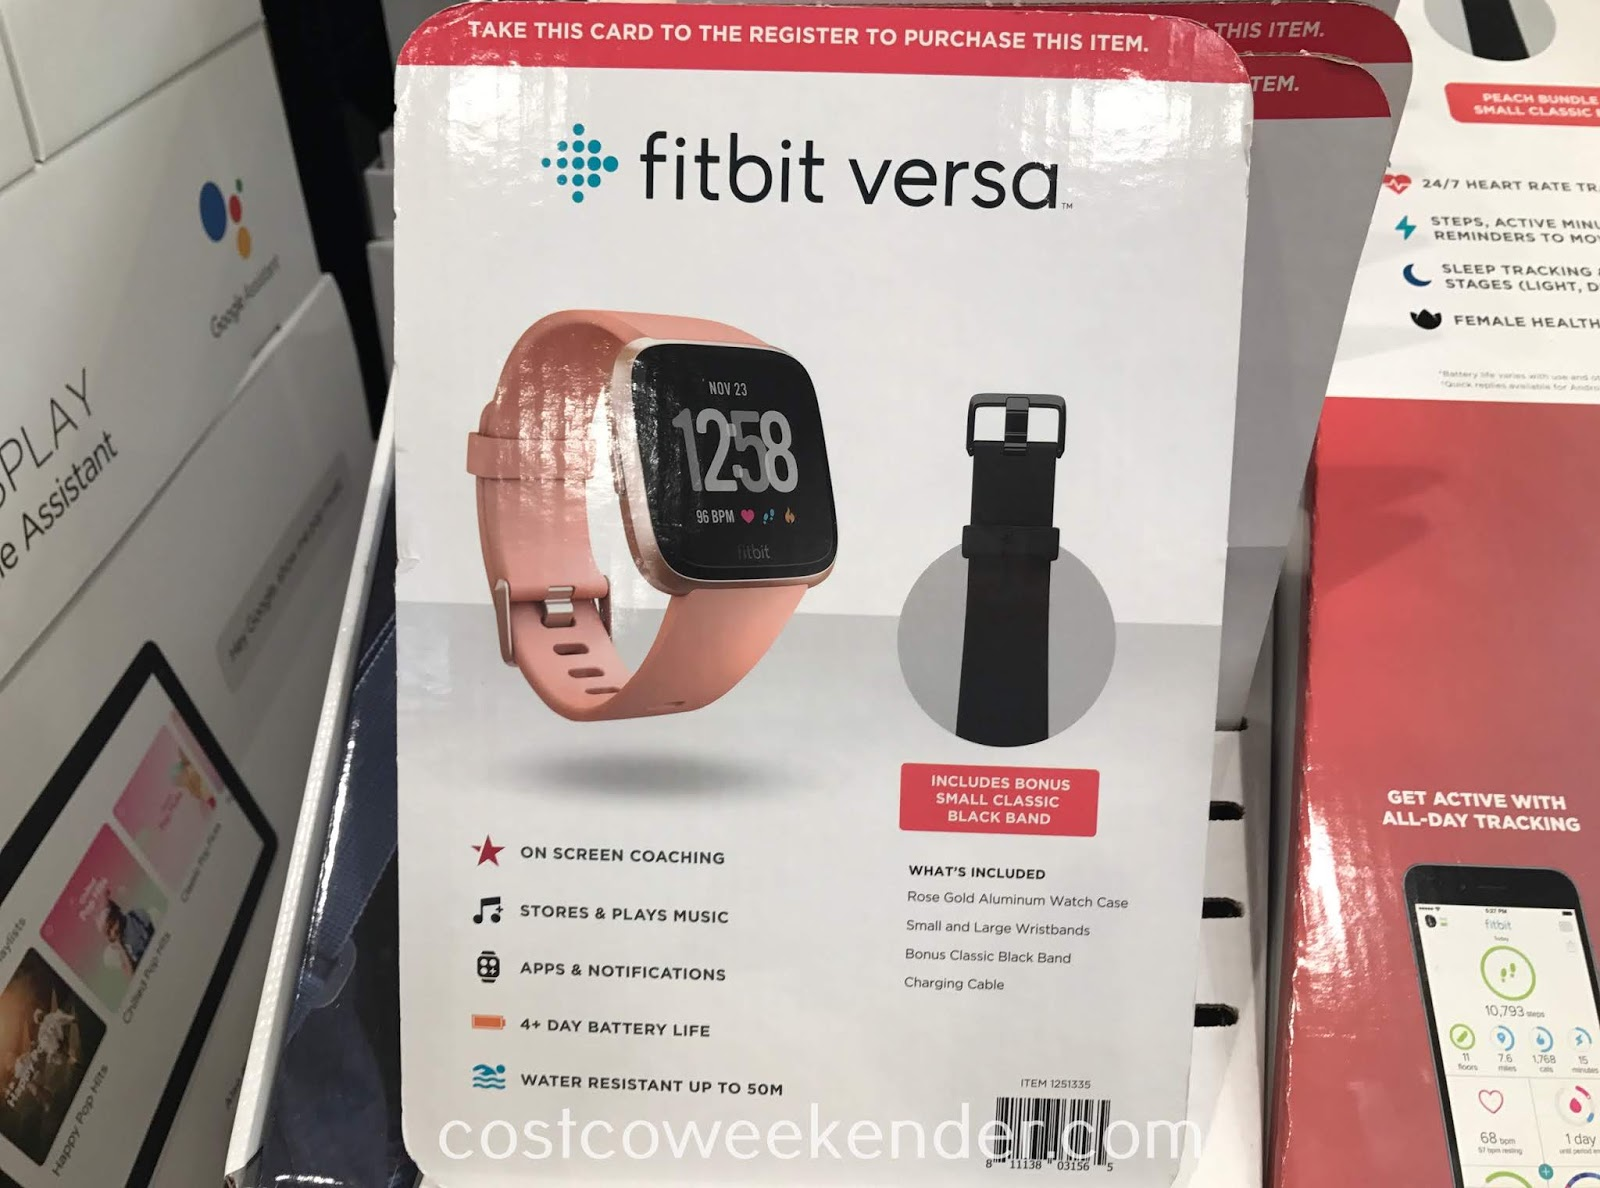 Costco 1251335 - Get the Fitbit Versa for a healthier lifestyle